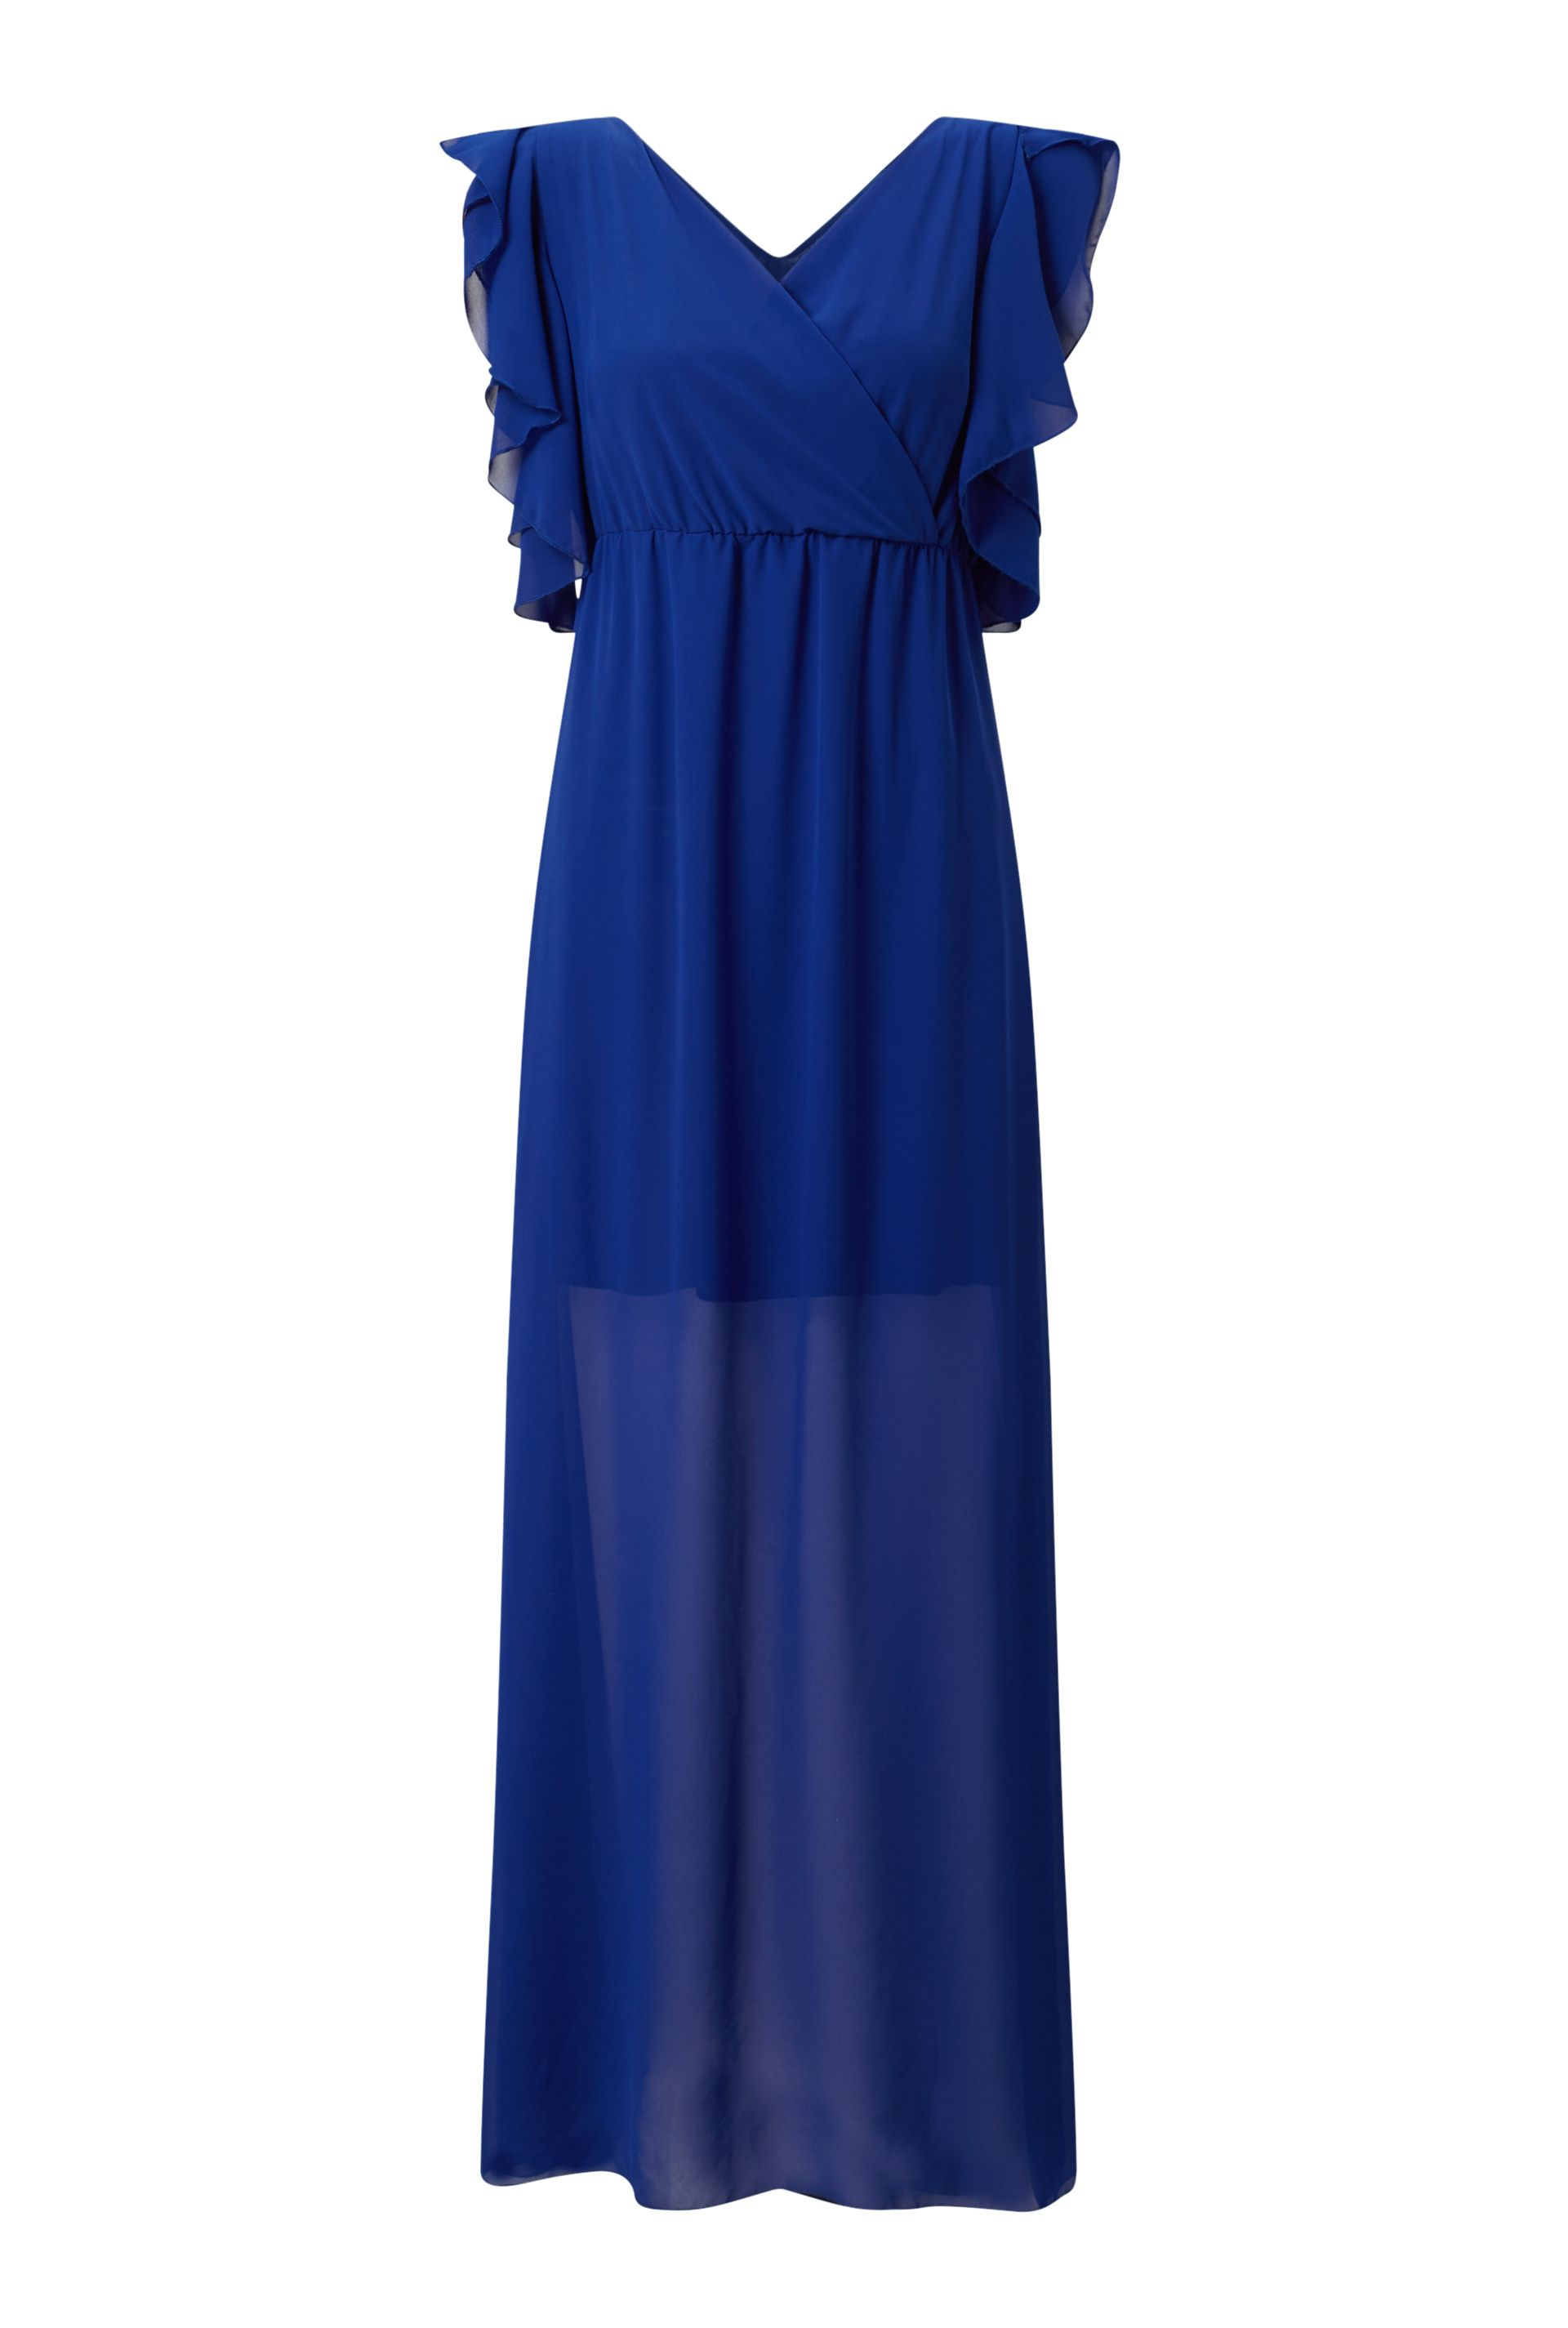 James Lakeland Ruffle Sleeve Maxi Dress, Blue